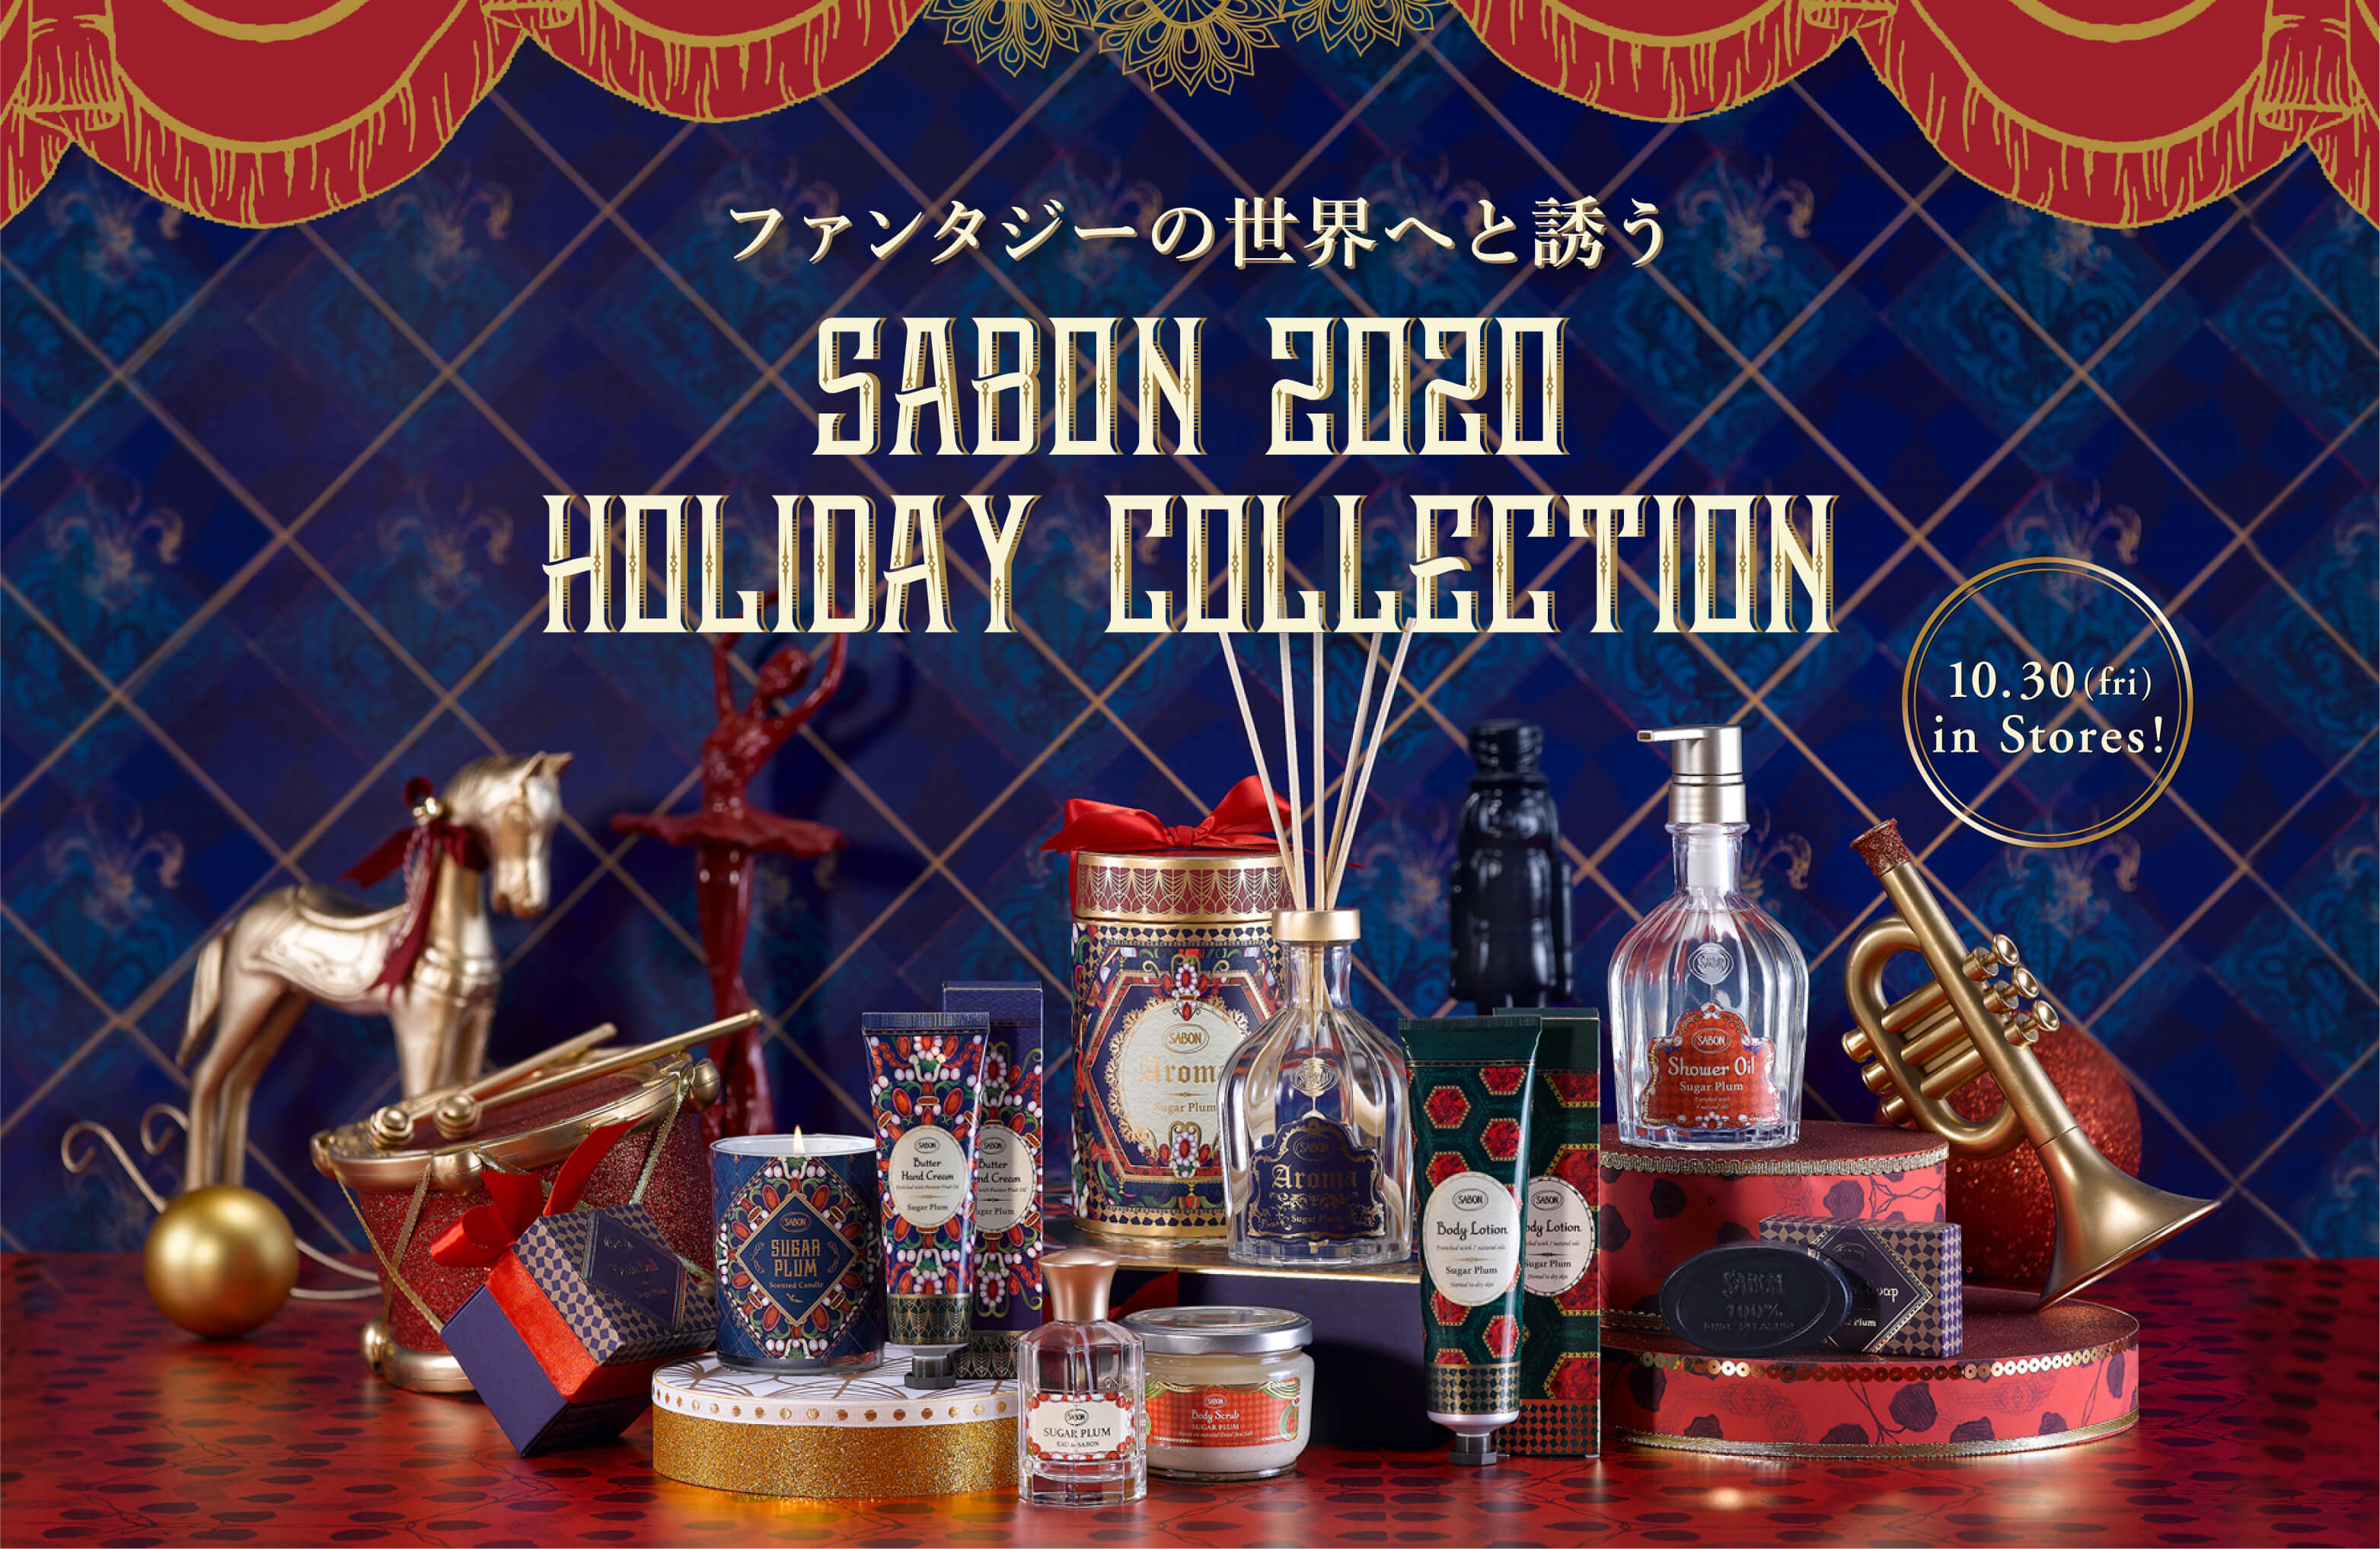 SABON 2020 HOLIDAY COLLECTION 10.30(fri) in stores!